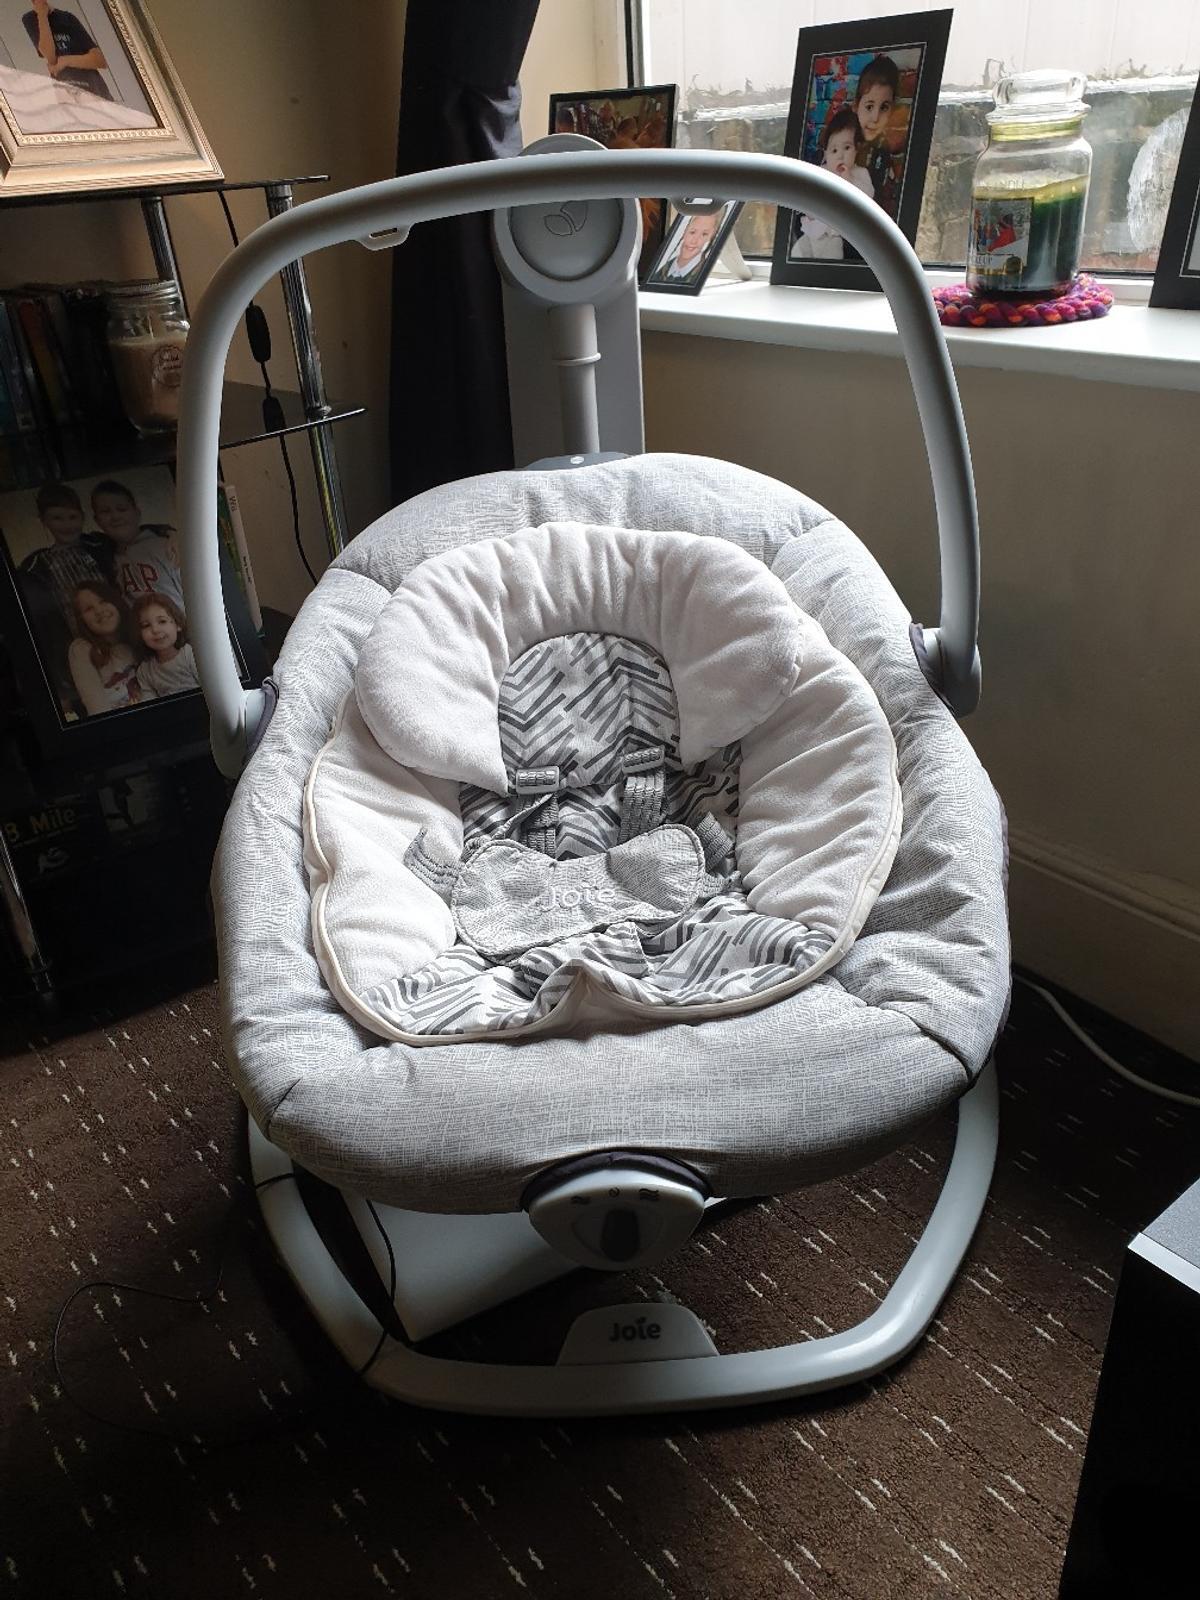 Joie 2in1 baby swing, has various speed settings, music and light. Good clean condition